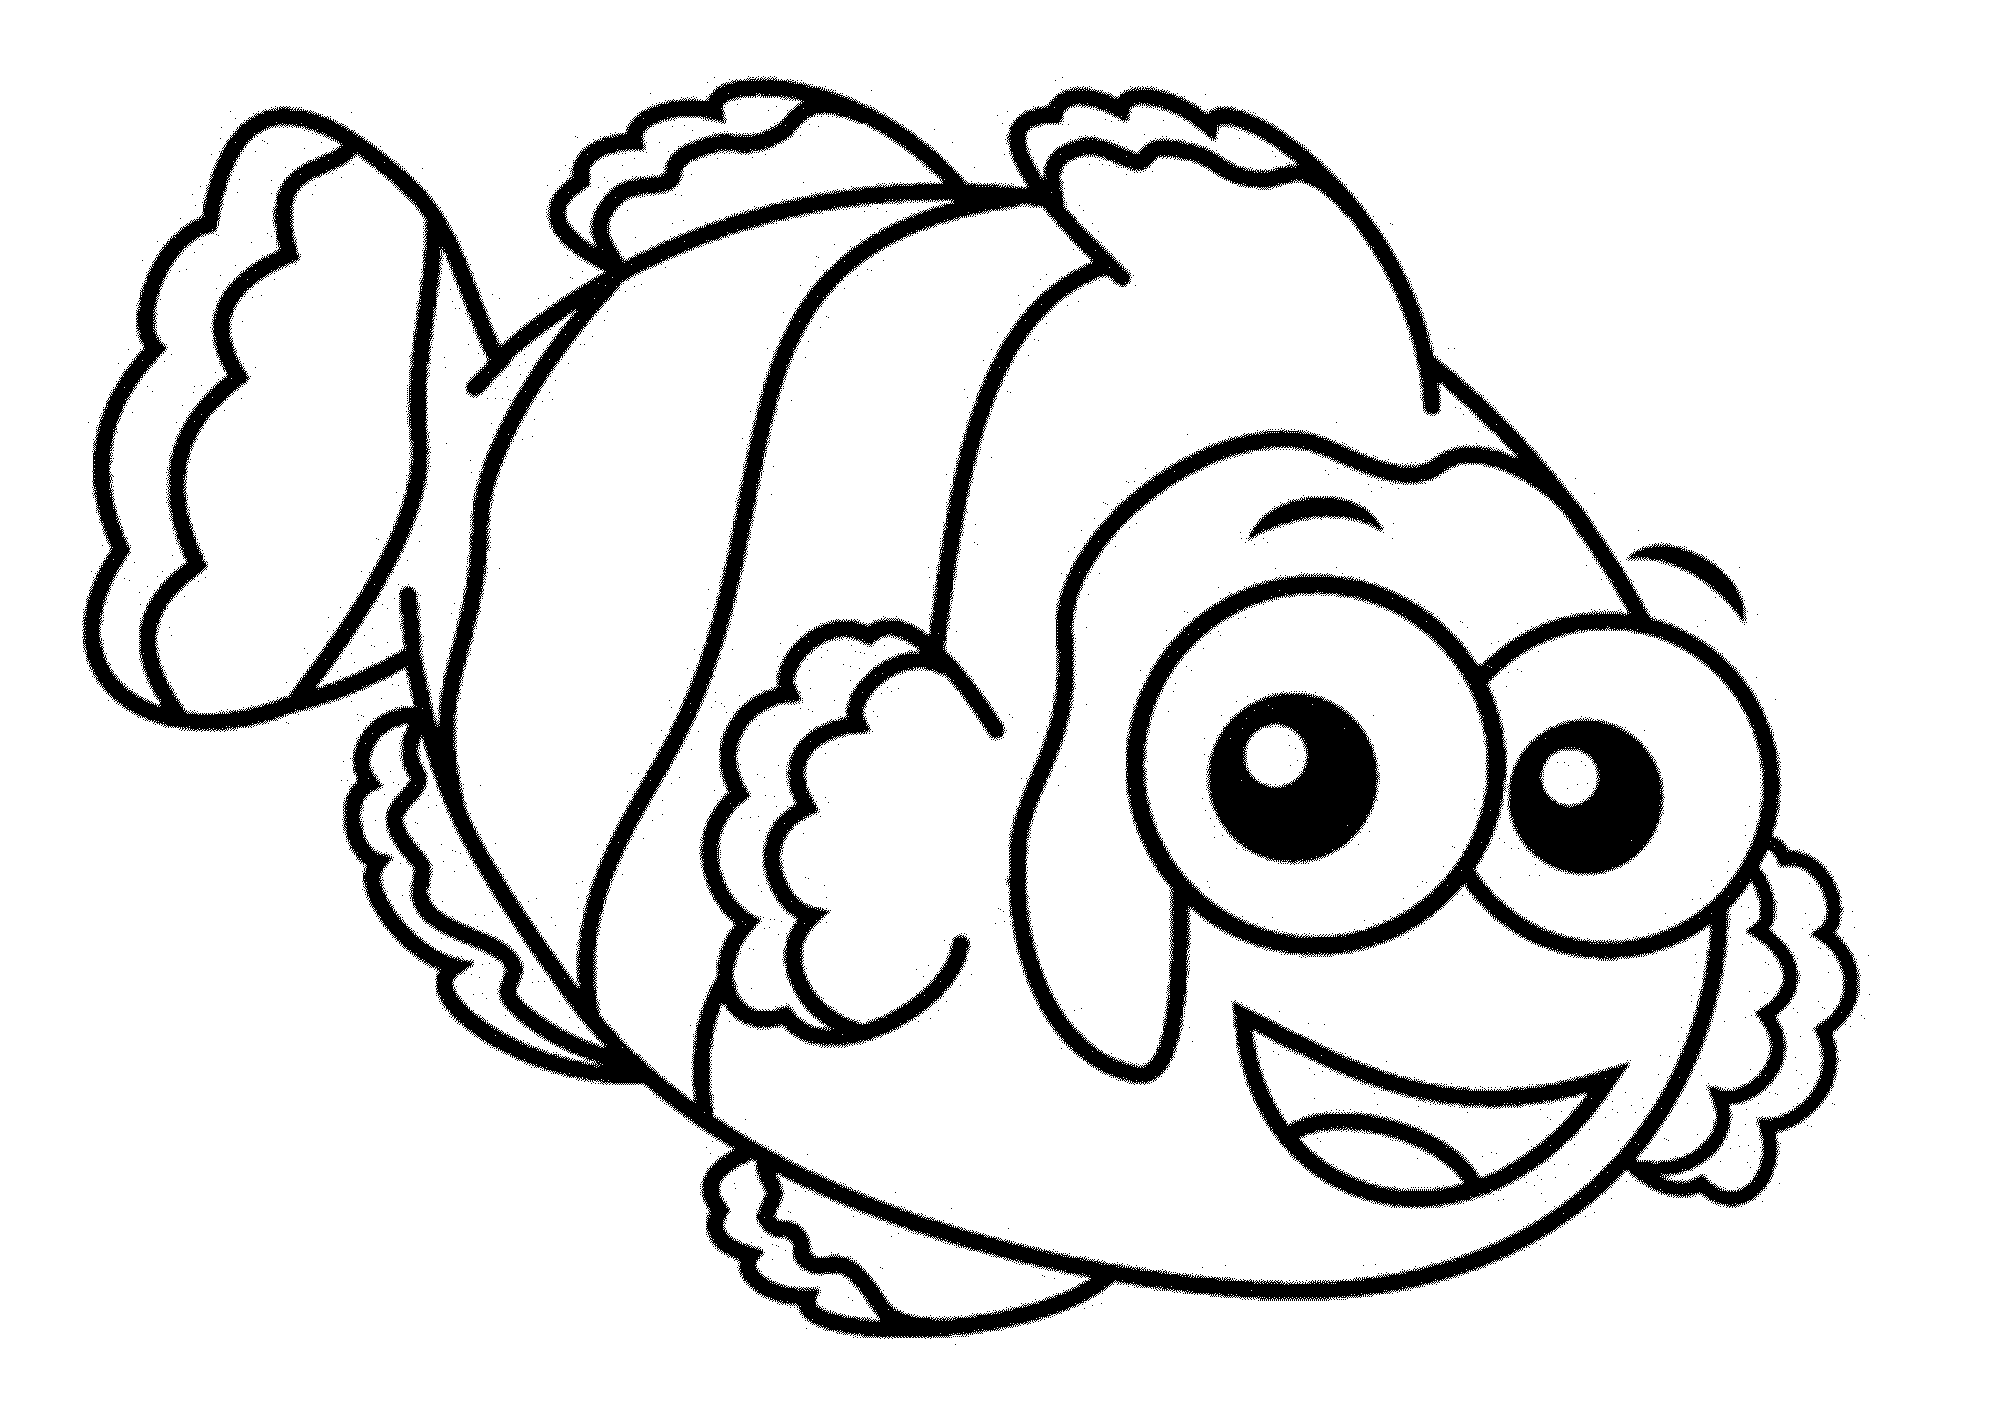 fish coloring page print download cute and educative fish coloring pages fish page coloring